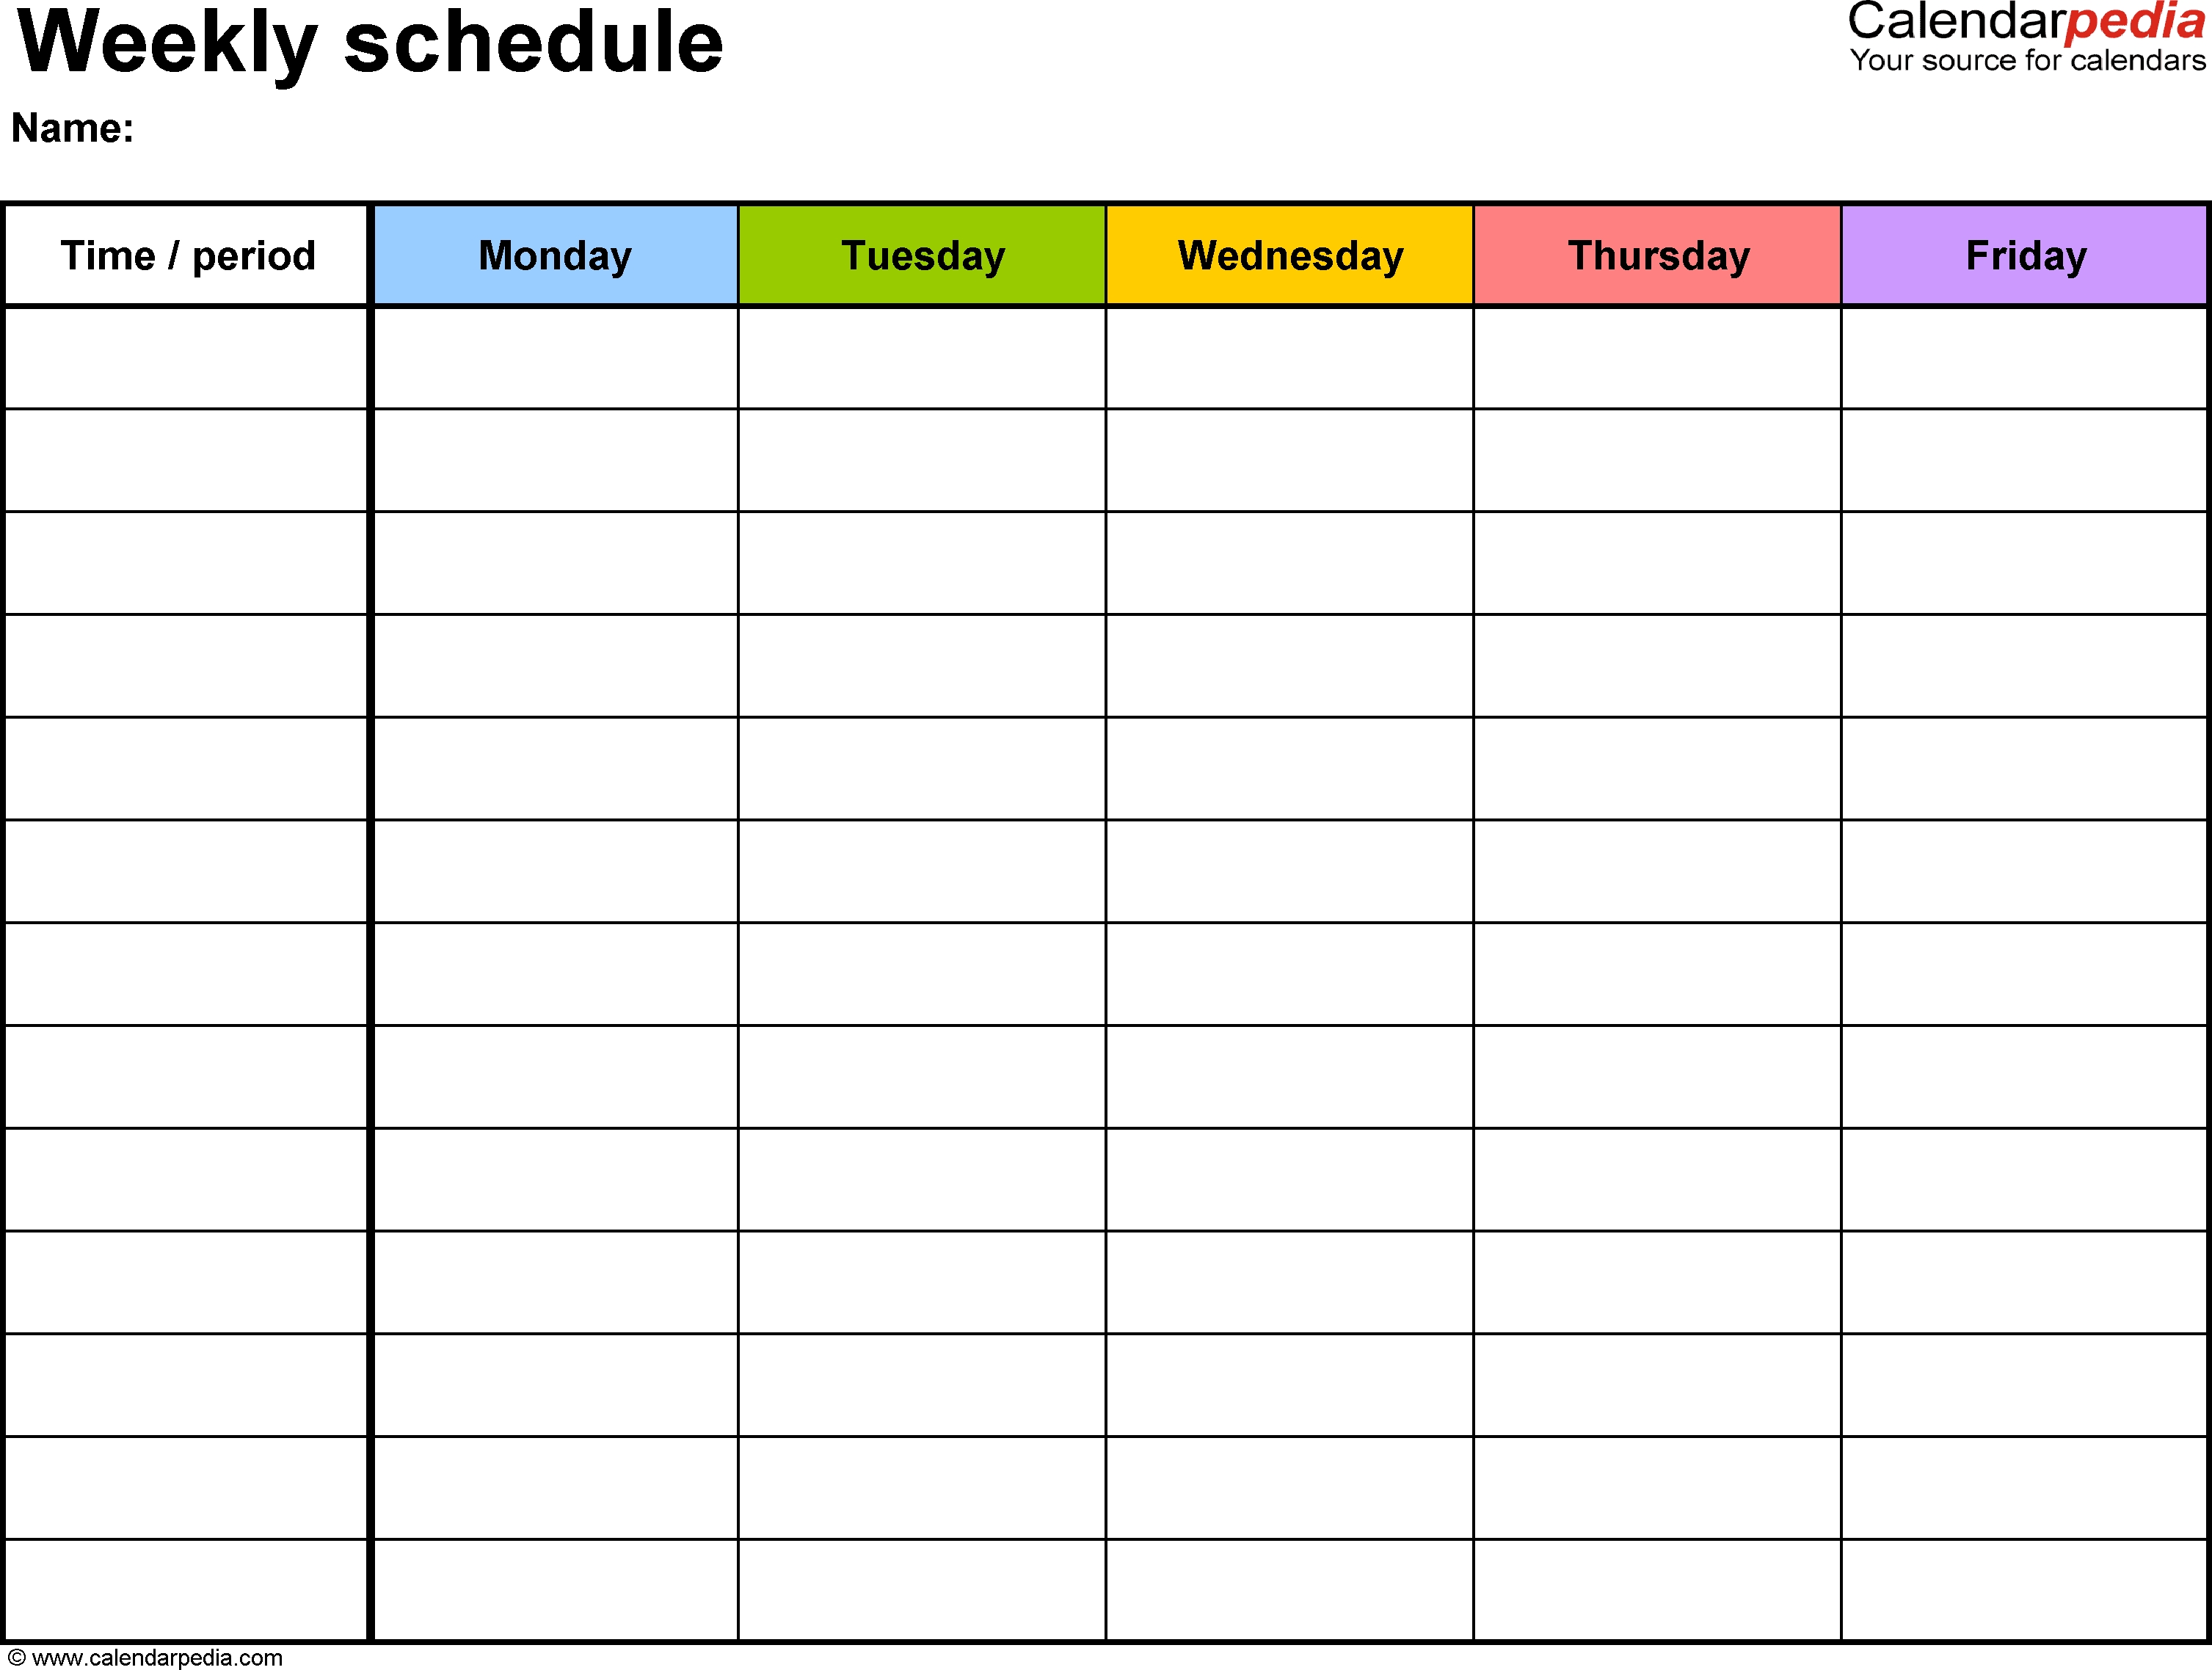 Free Weekly Schedule Templates For Word - 18 Templates pertaining to Printable Weekly Calendar Monday Through Friday